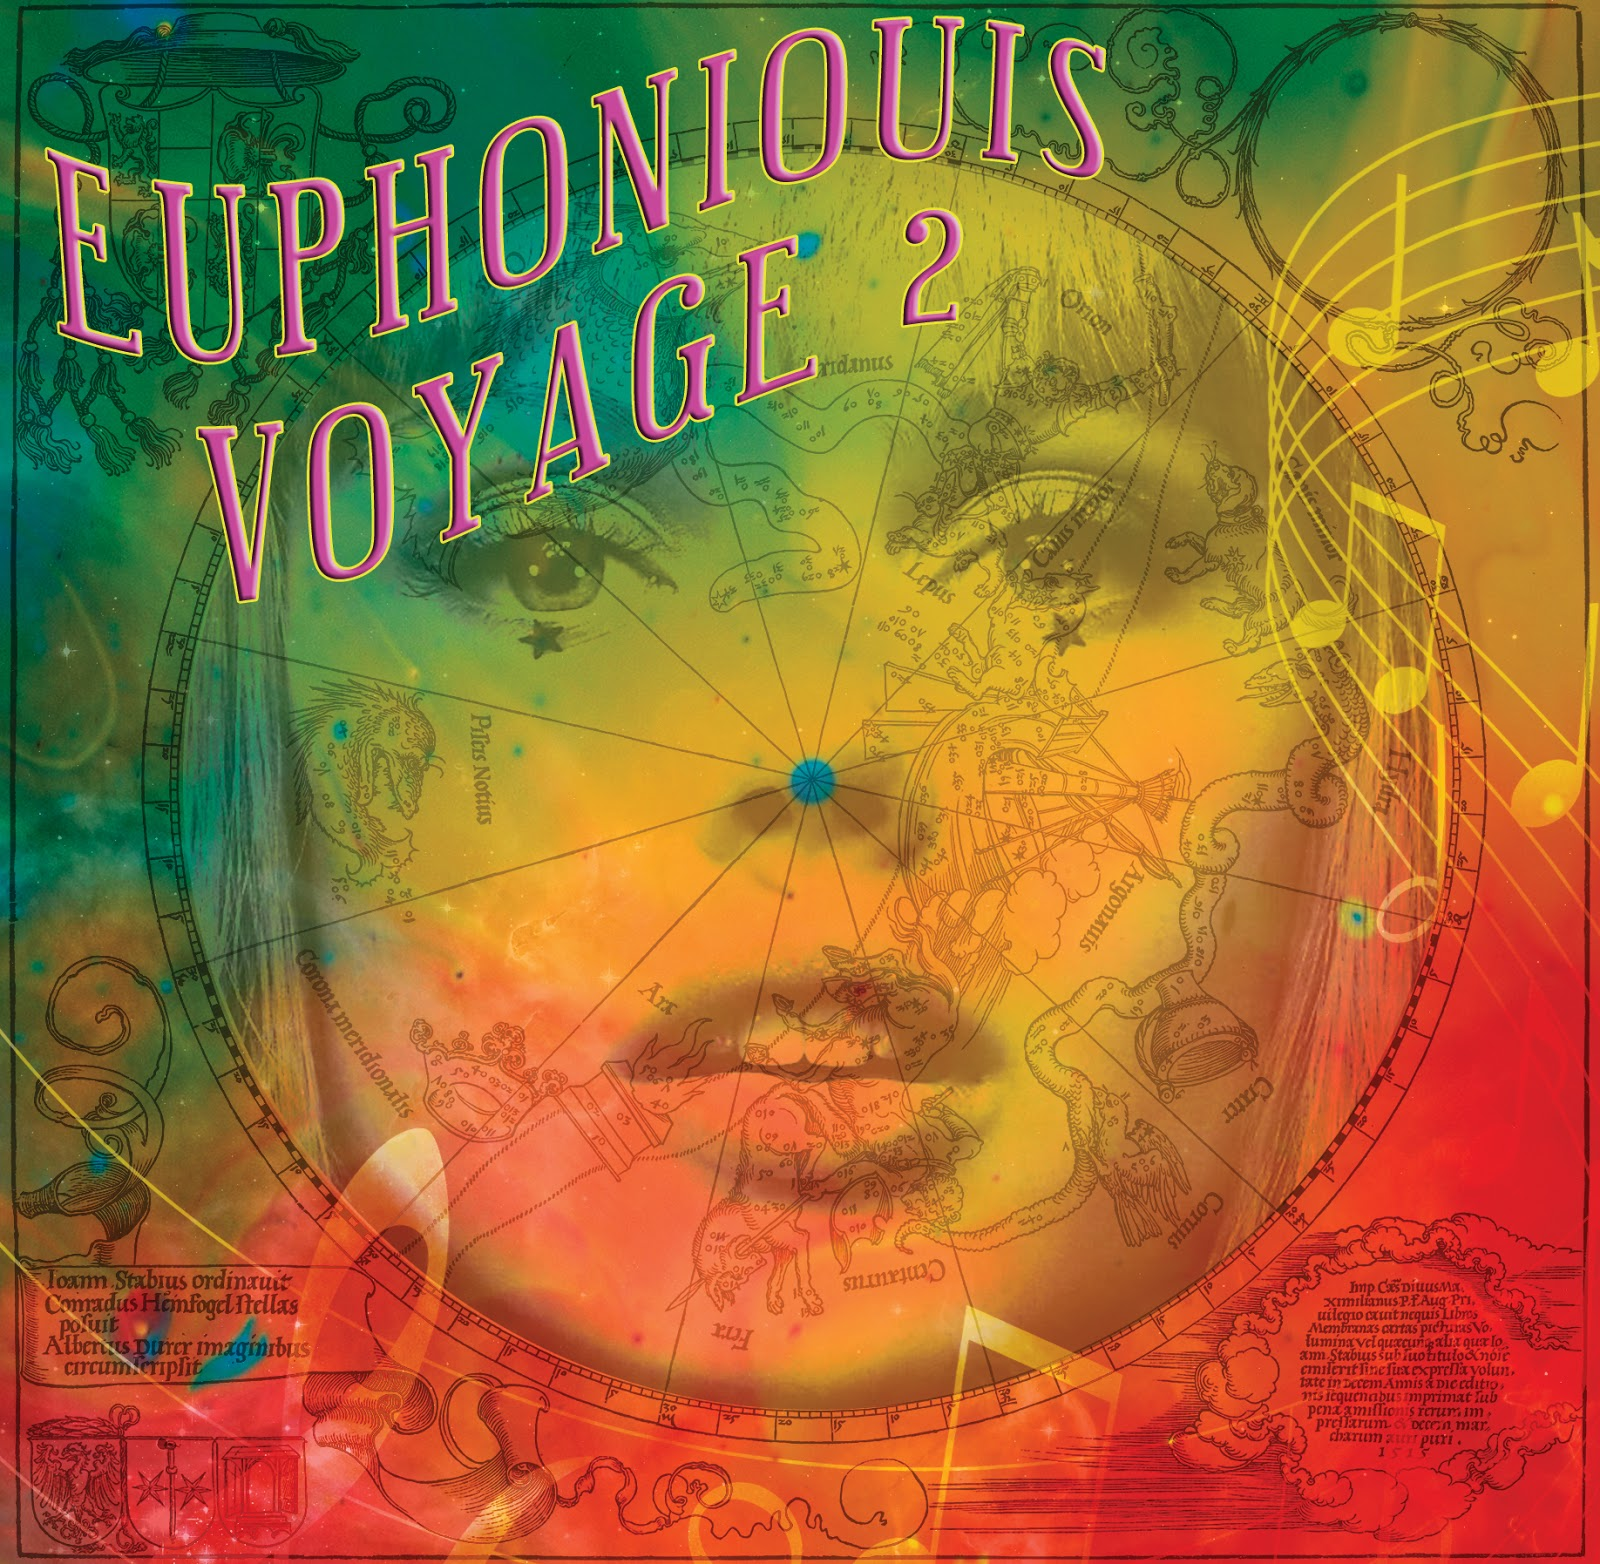 4ea7fafc1236 Set Your Psychedelic Sails For. . . Euphonious Voyage II: Ecclectic  Boogaloo!